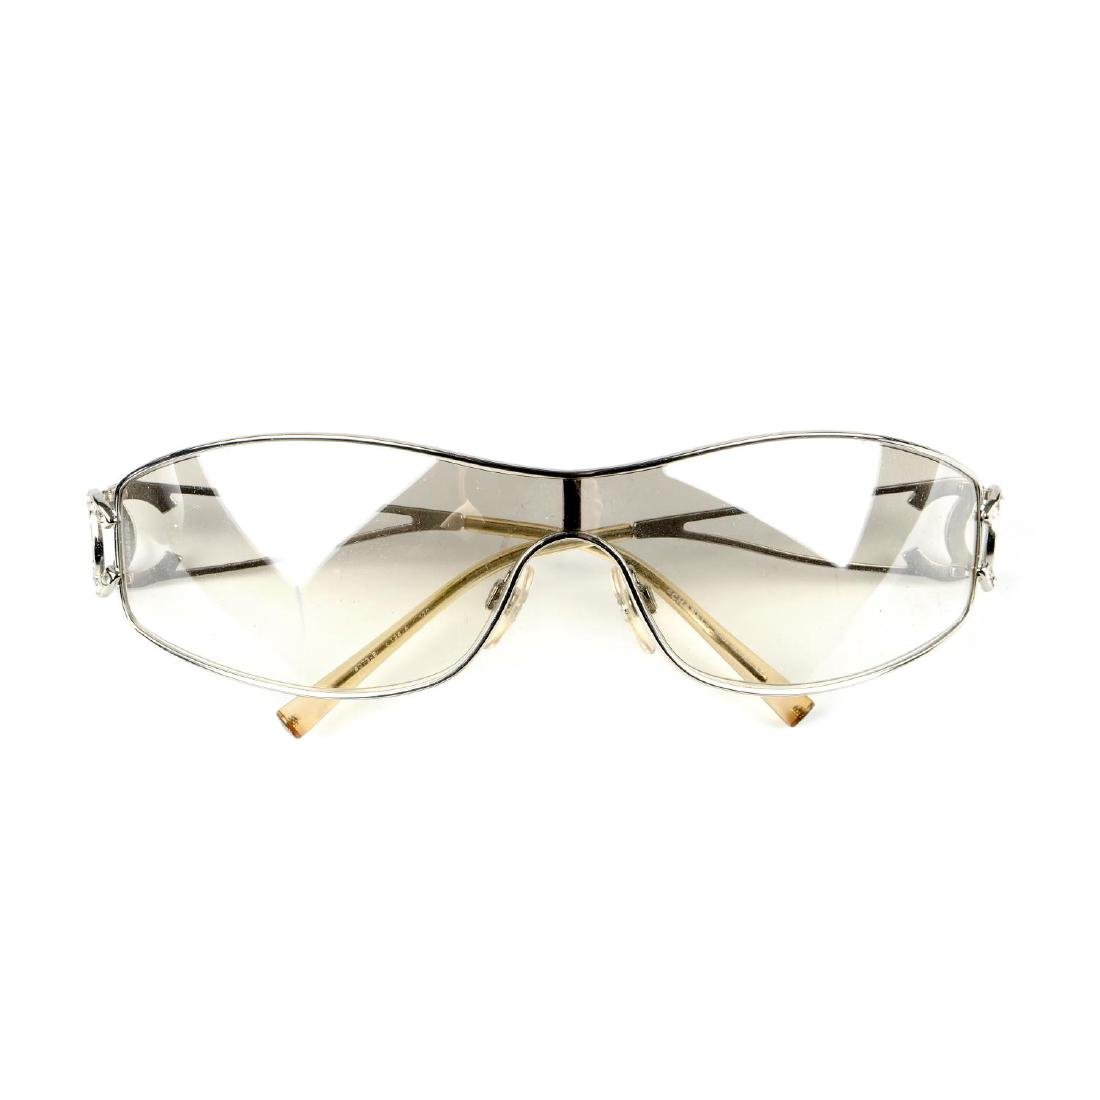 CHANEL - a pair of sunglasses. Featuring a slim line